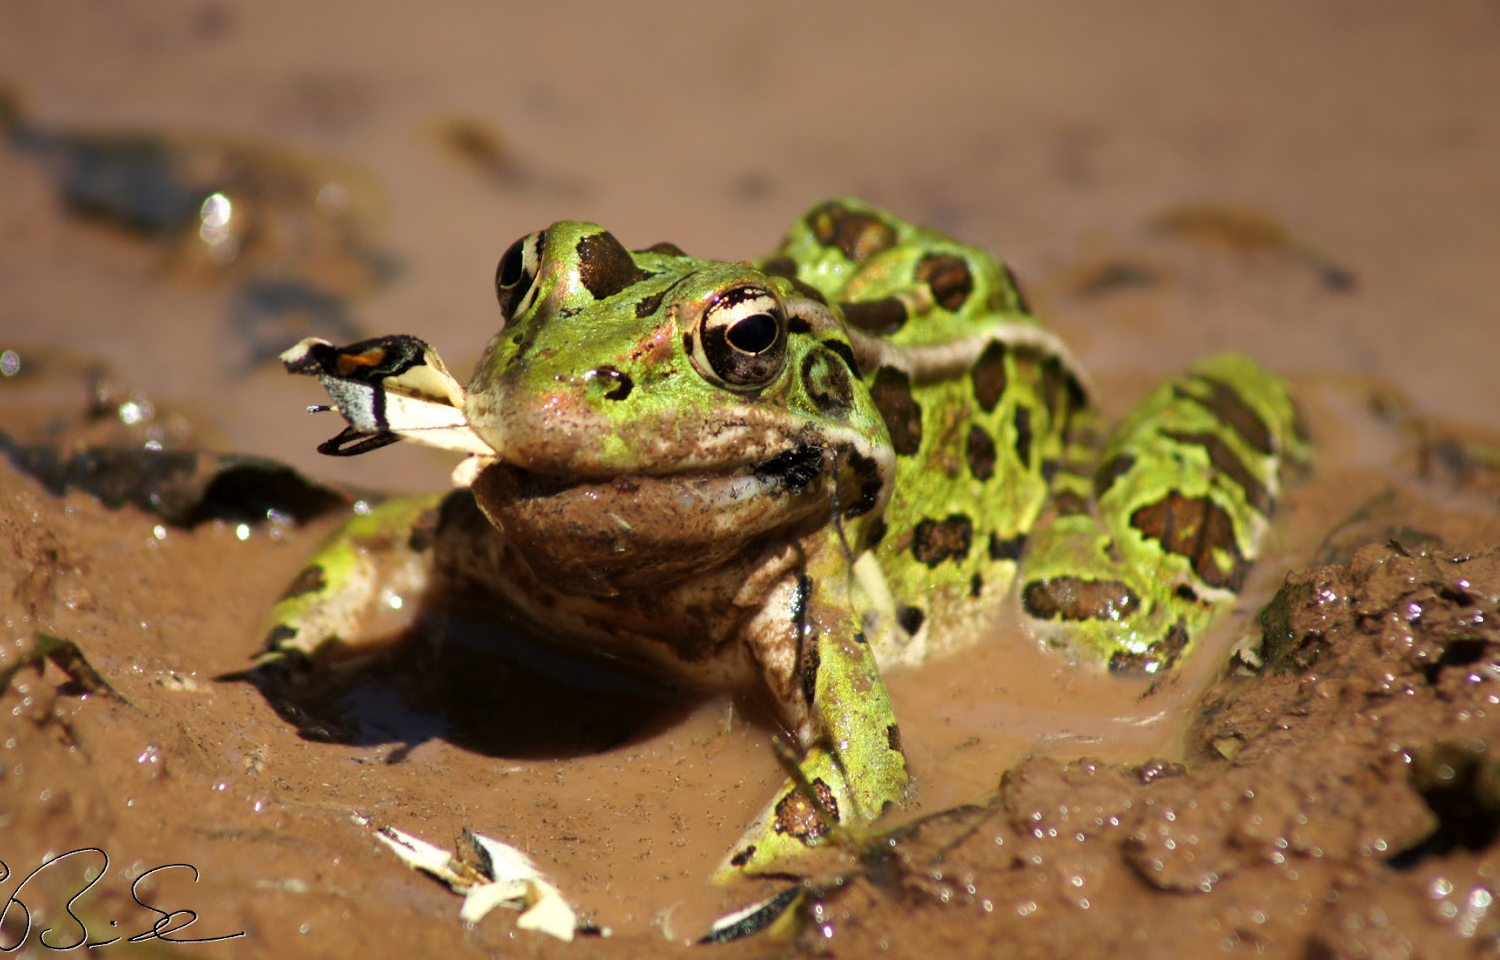 Northern Leopard Frog - Facts about